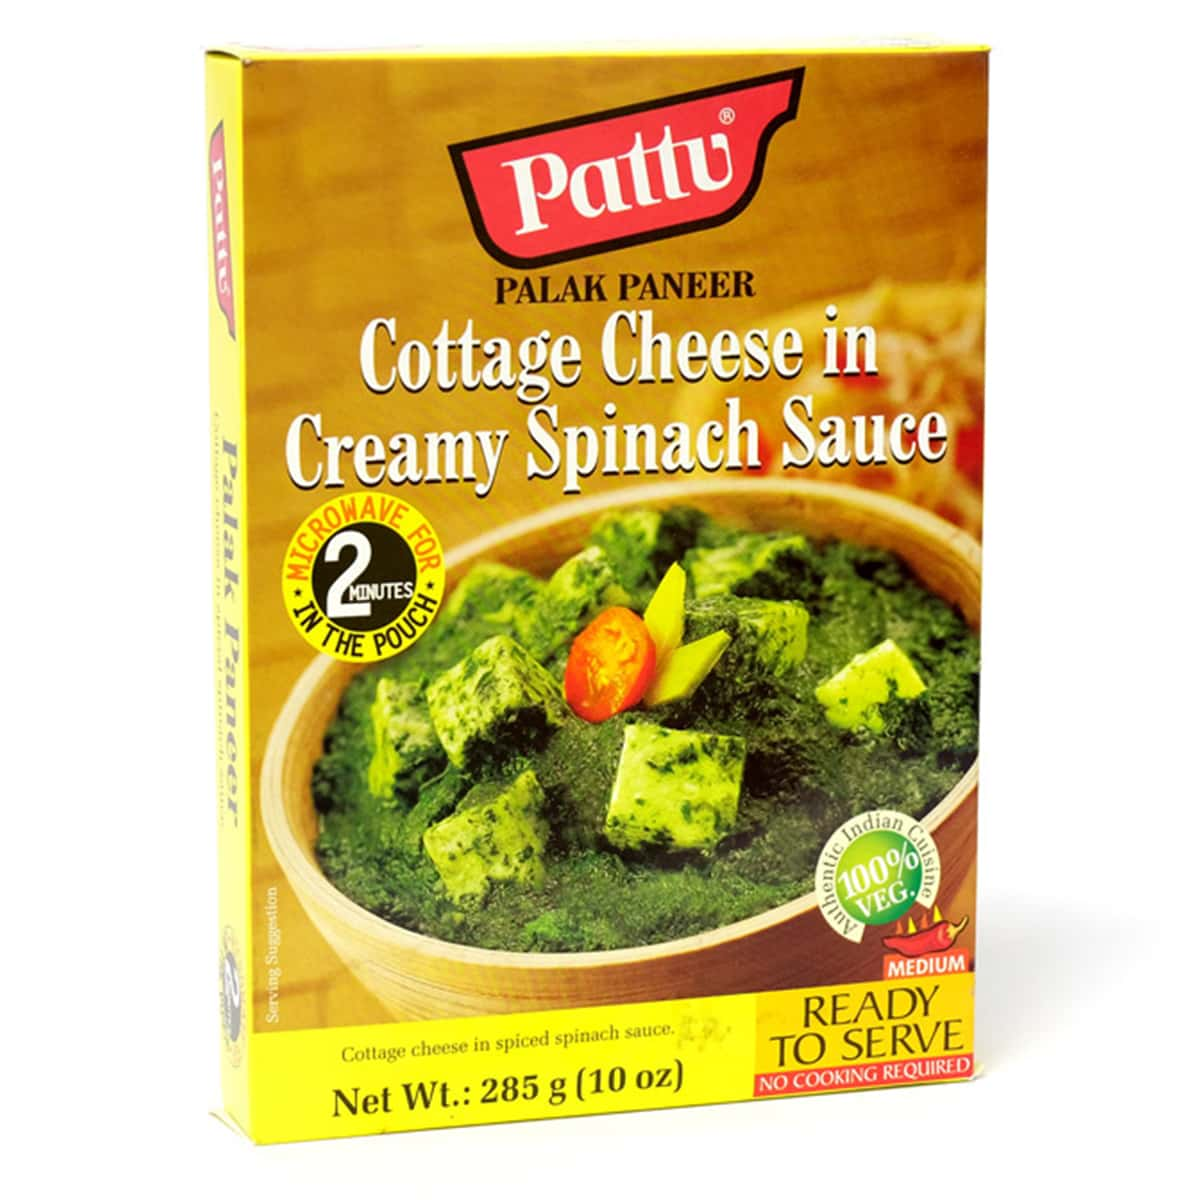 Buy Pattu Palak Paneer (Cottage Cheese in Creamy Spinach Sauce) Ready to Serve - 285 gm